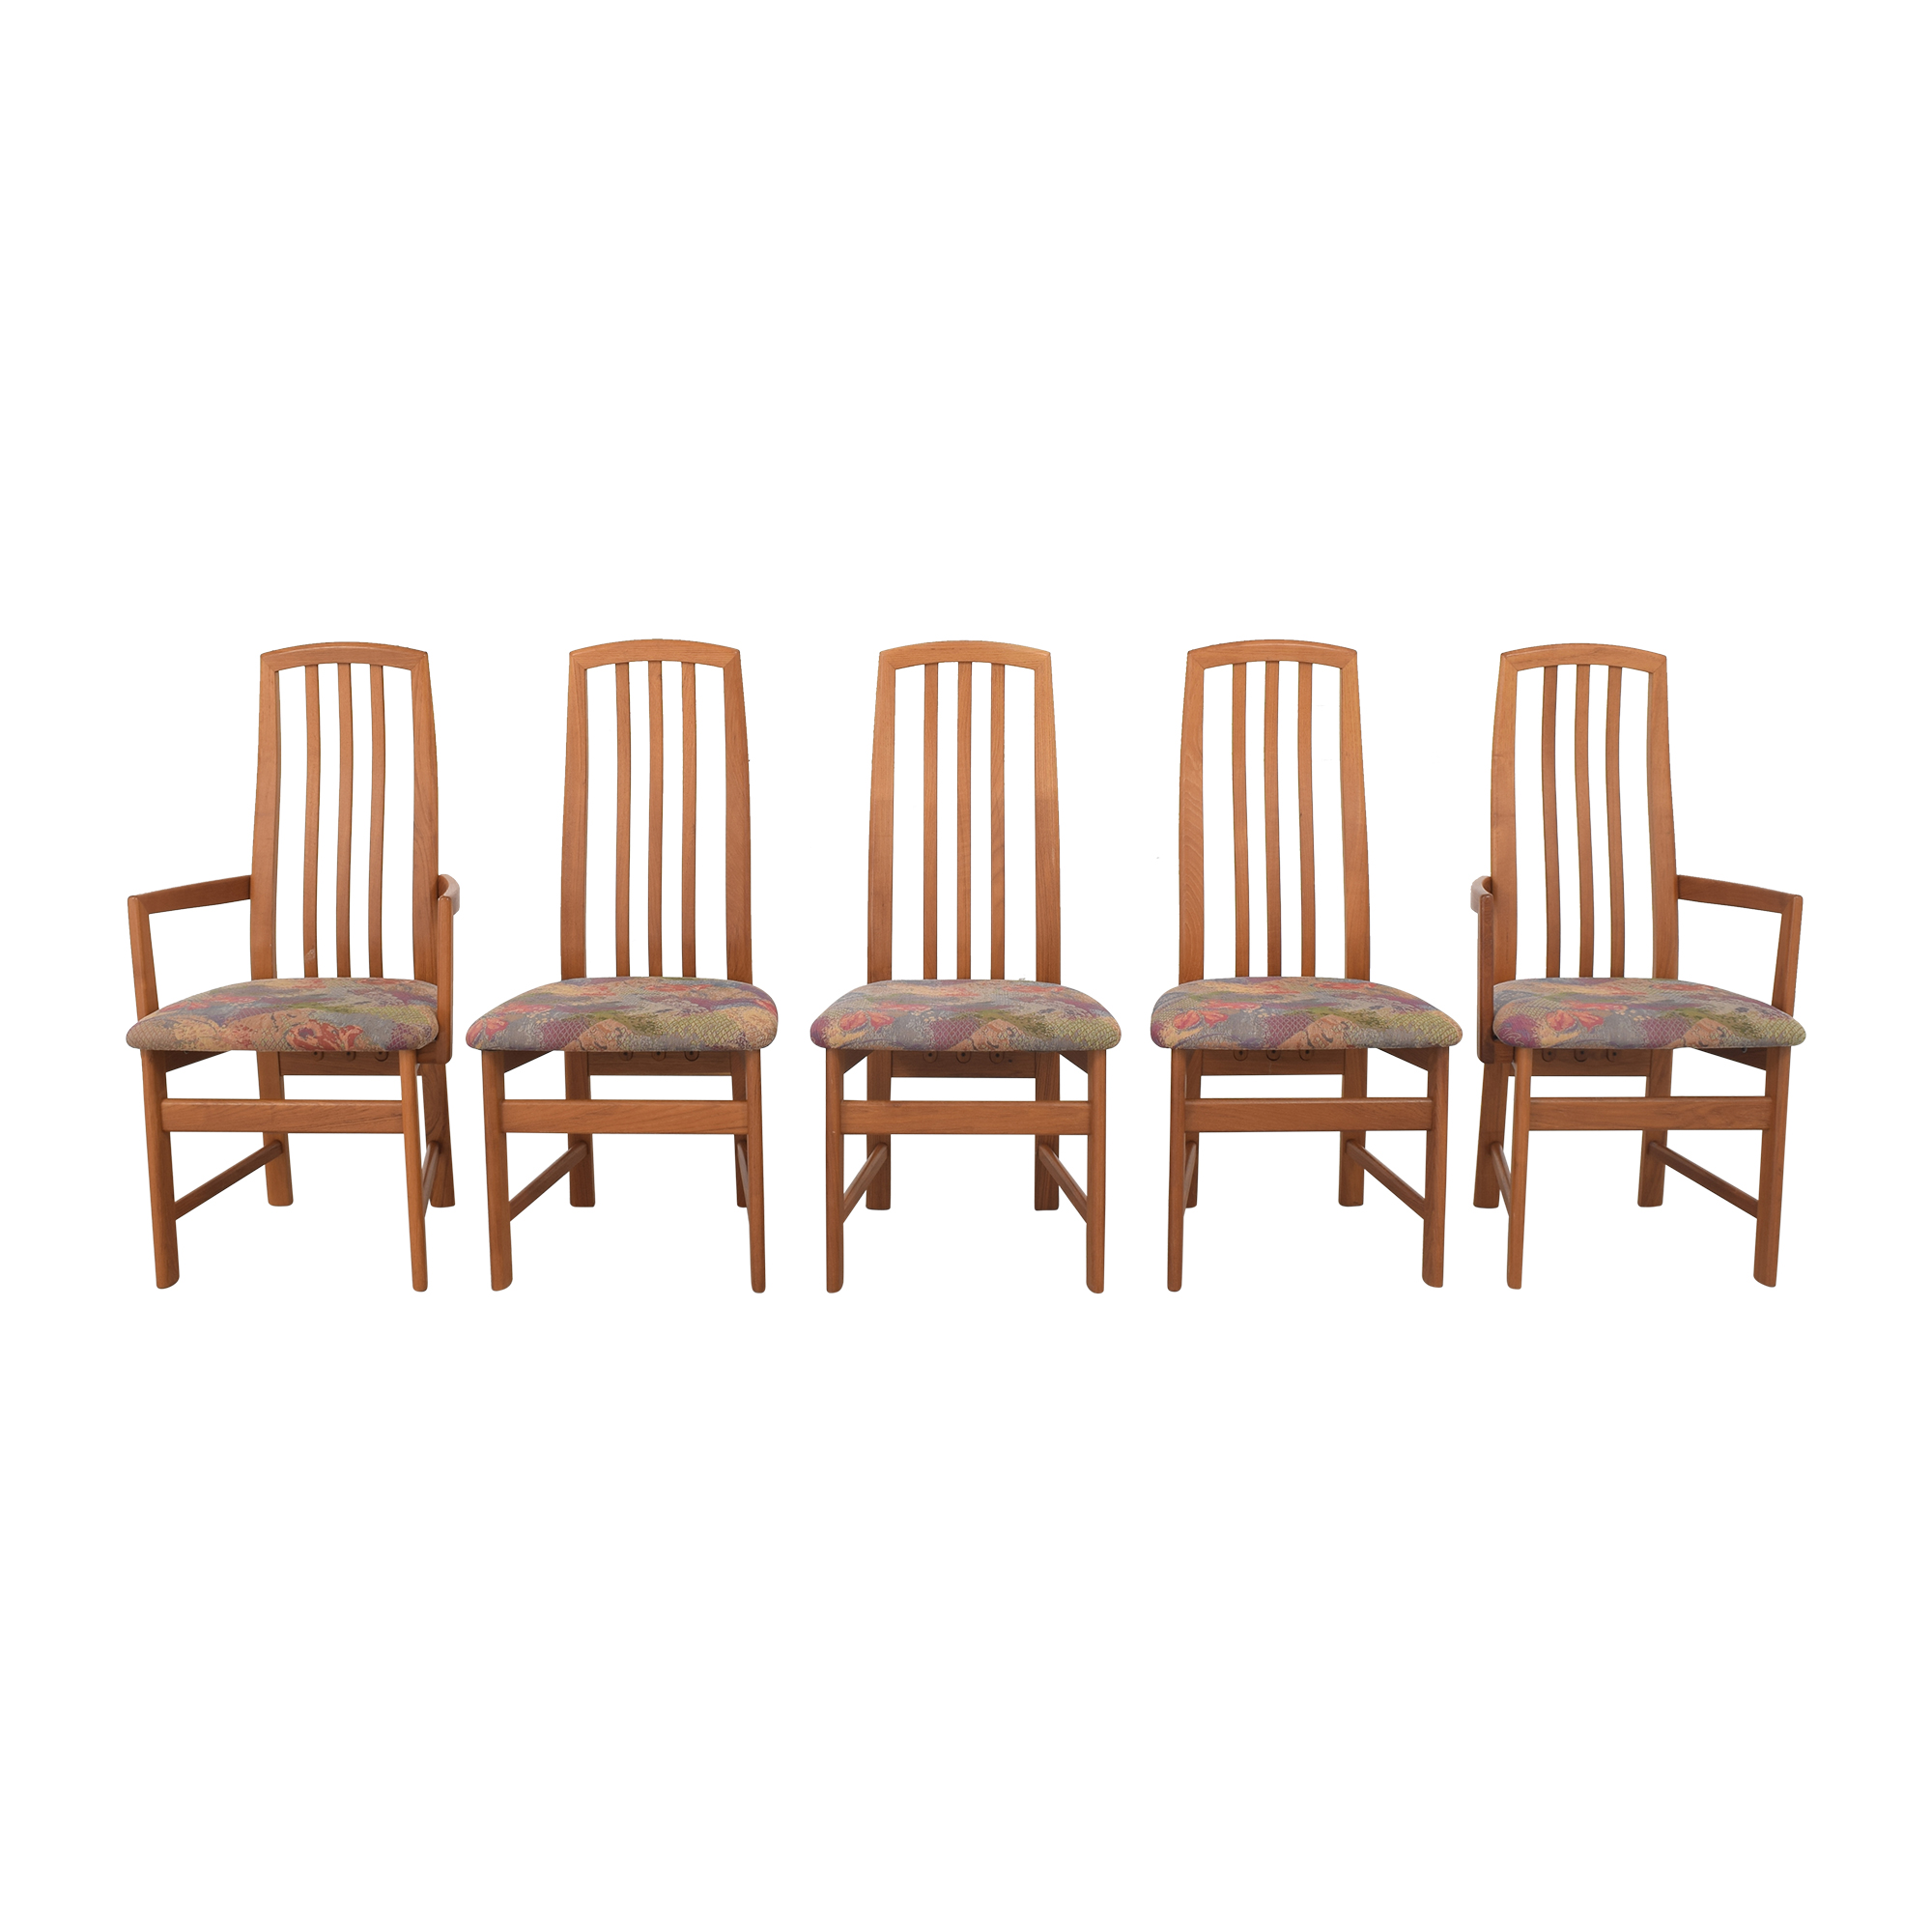 Danish Furniture Industries Company DFIC Nordic Furniture Dining Chairs price